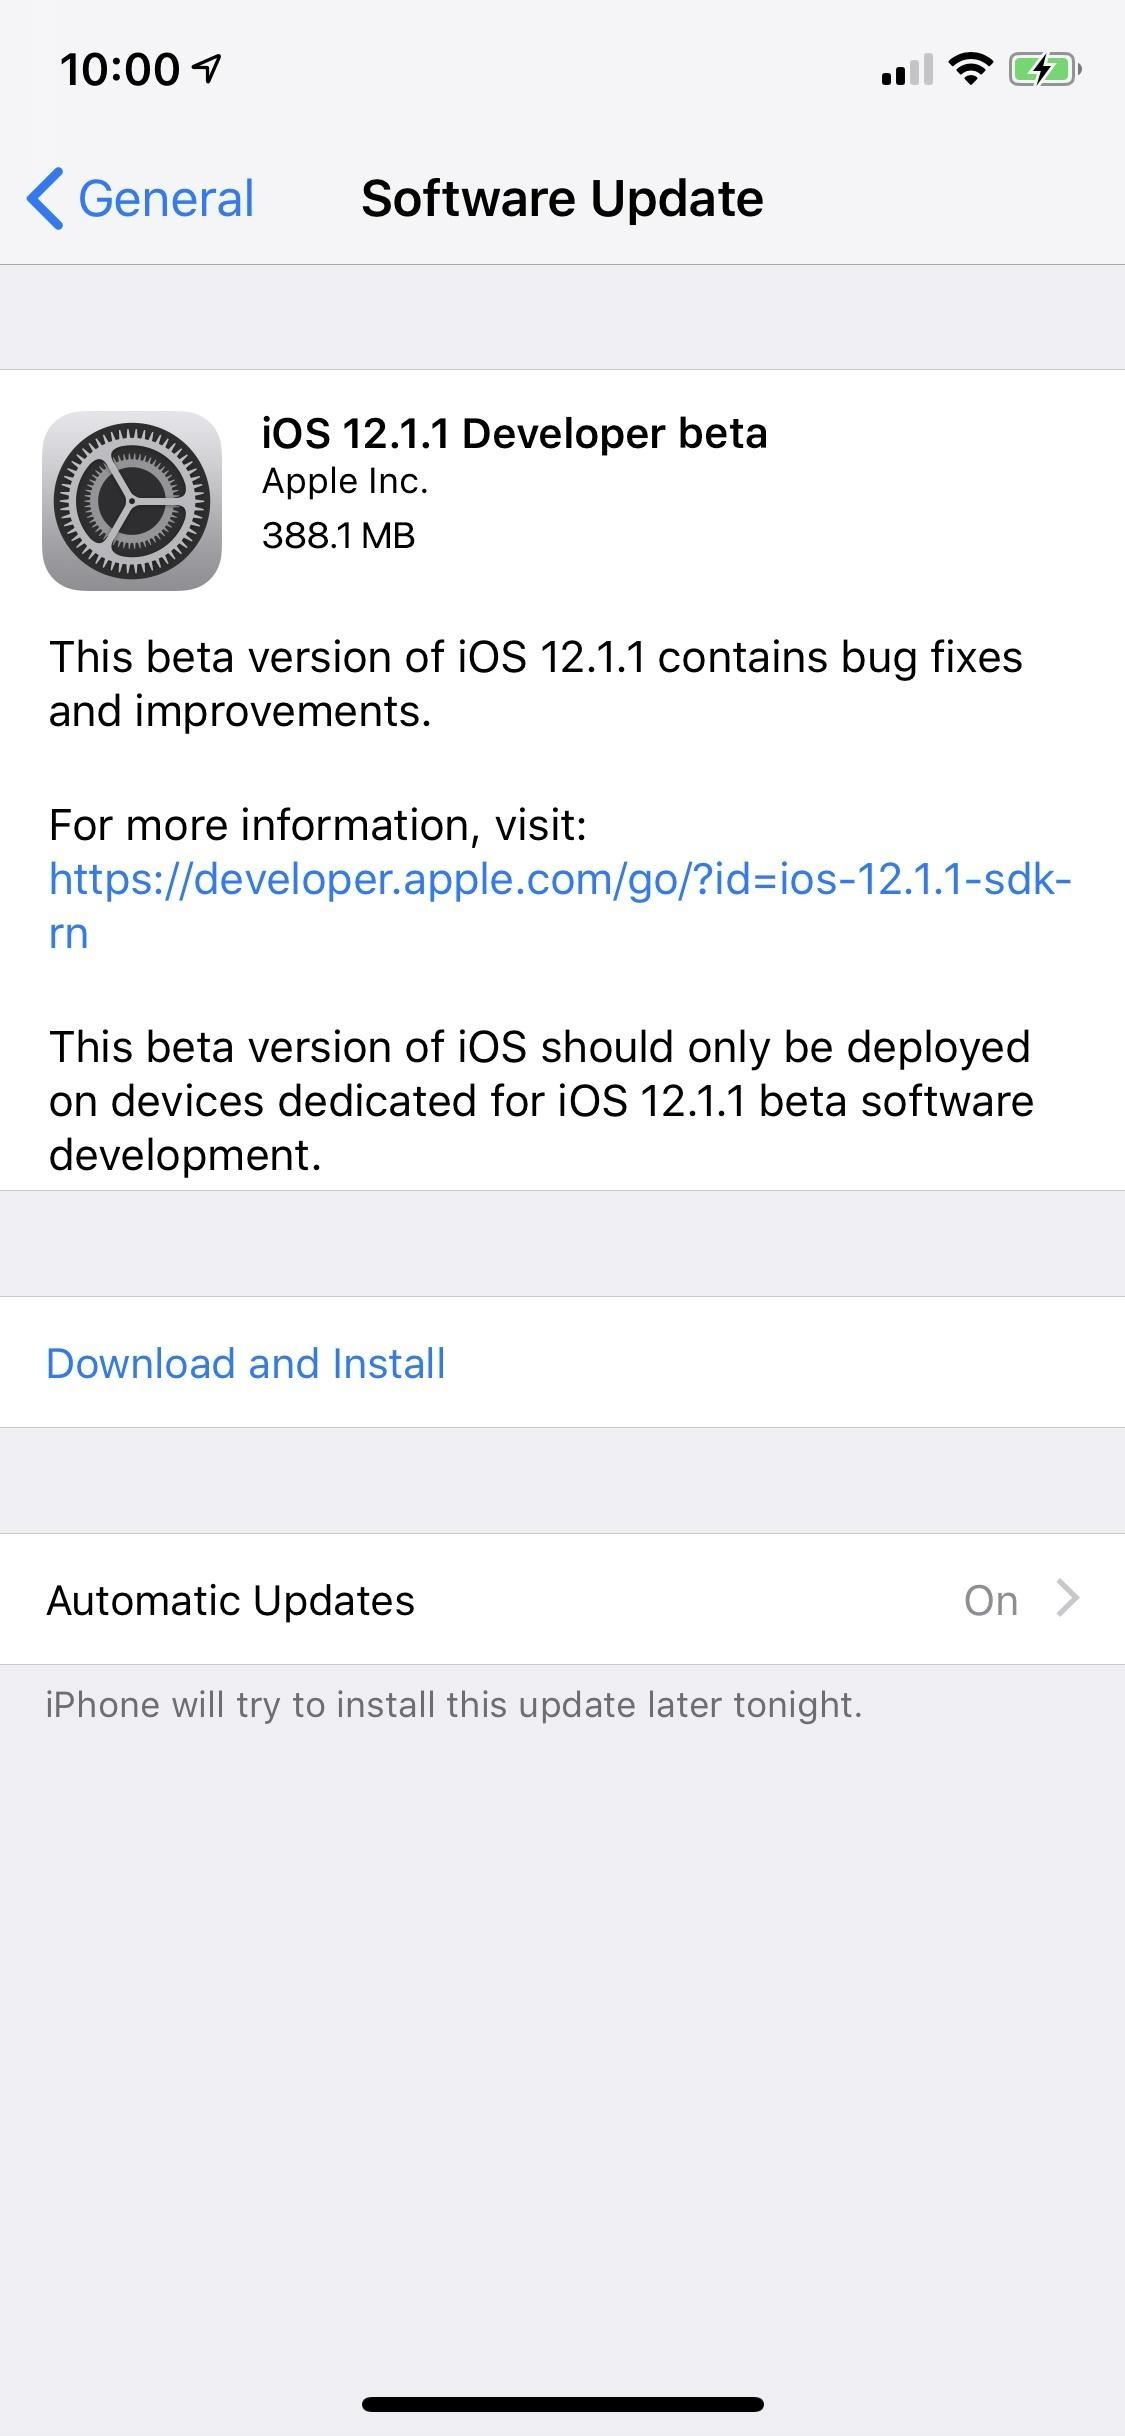 Apple Just Released the First iOS 12.1.1 Beta to Developers